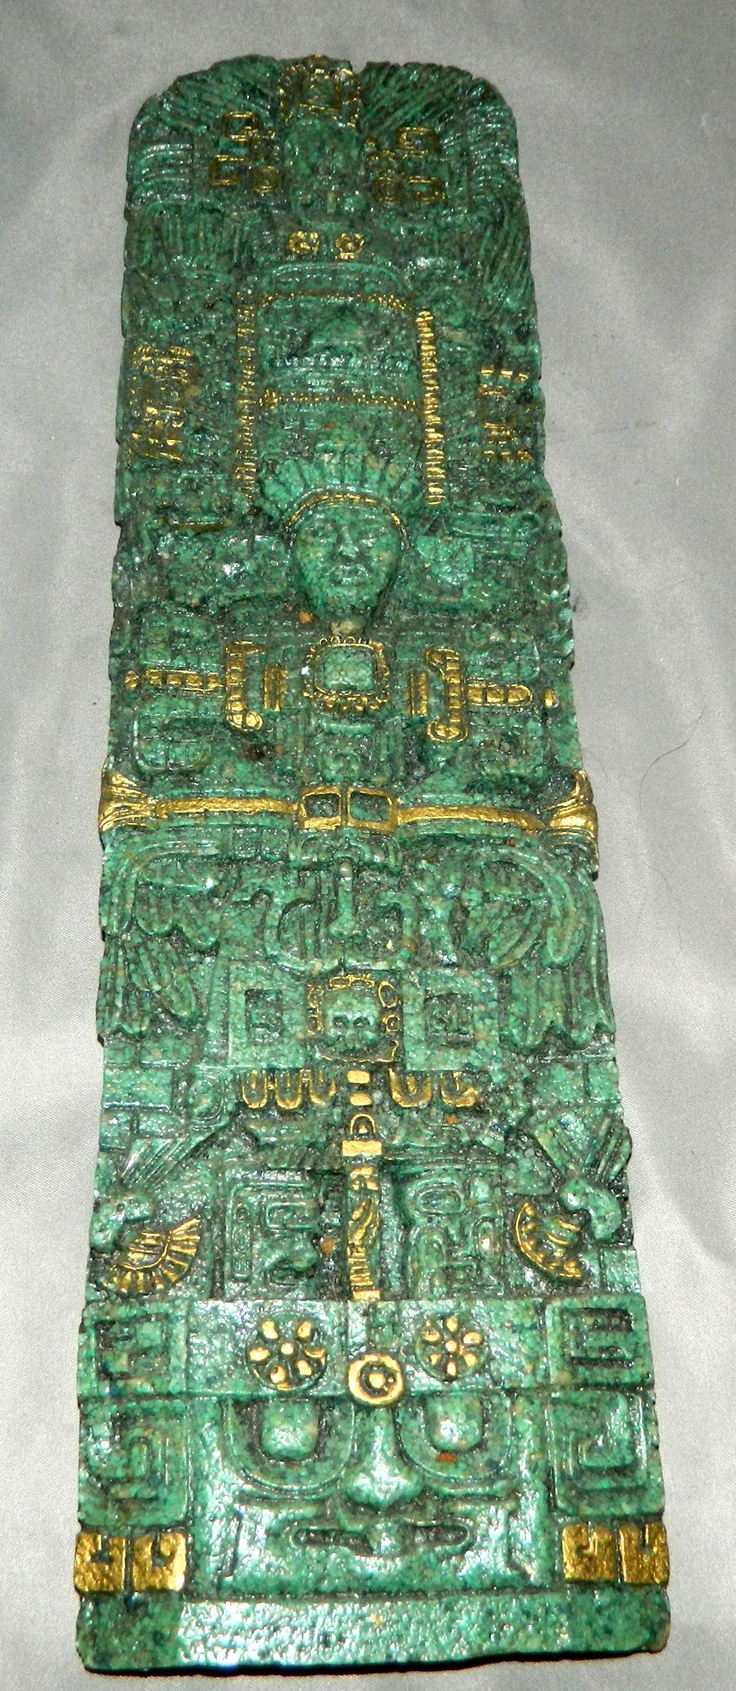 Mayan Symbols - End of the World Lucky Charm - http://www.etsy.com/listing/94197756/vintage-mayan-stone-cast-resin-plaque